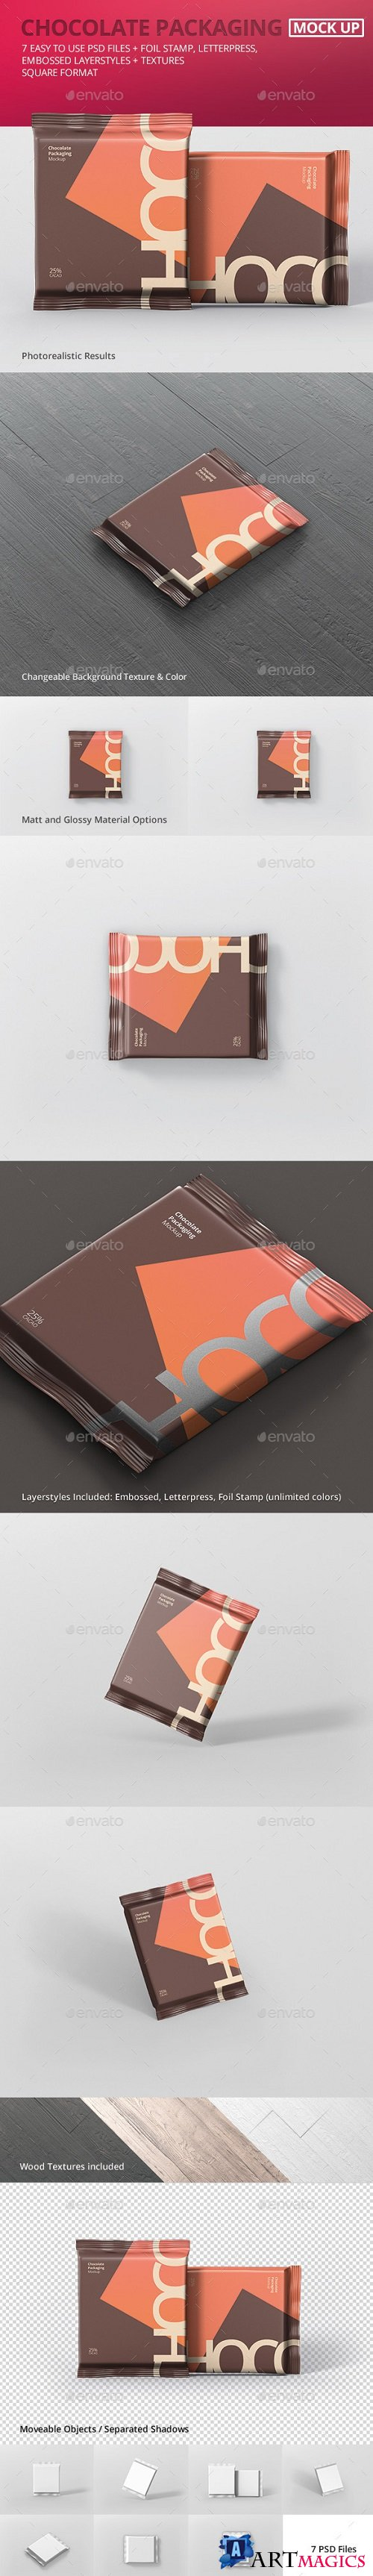 Foil Chocolate Packaging Mockup - Square Size - 21180593